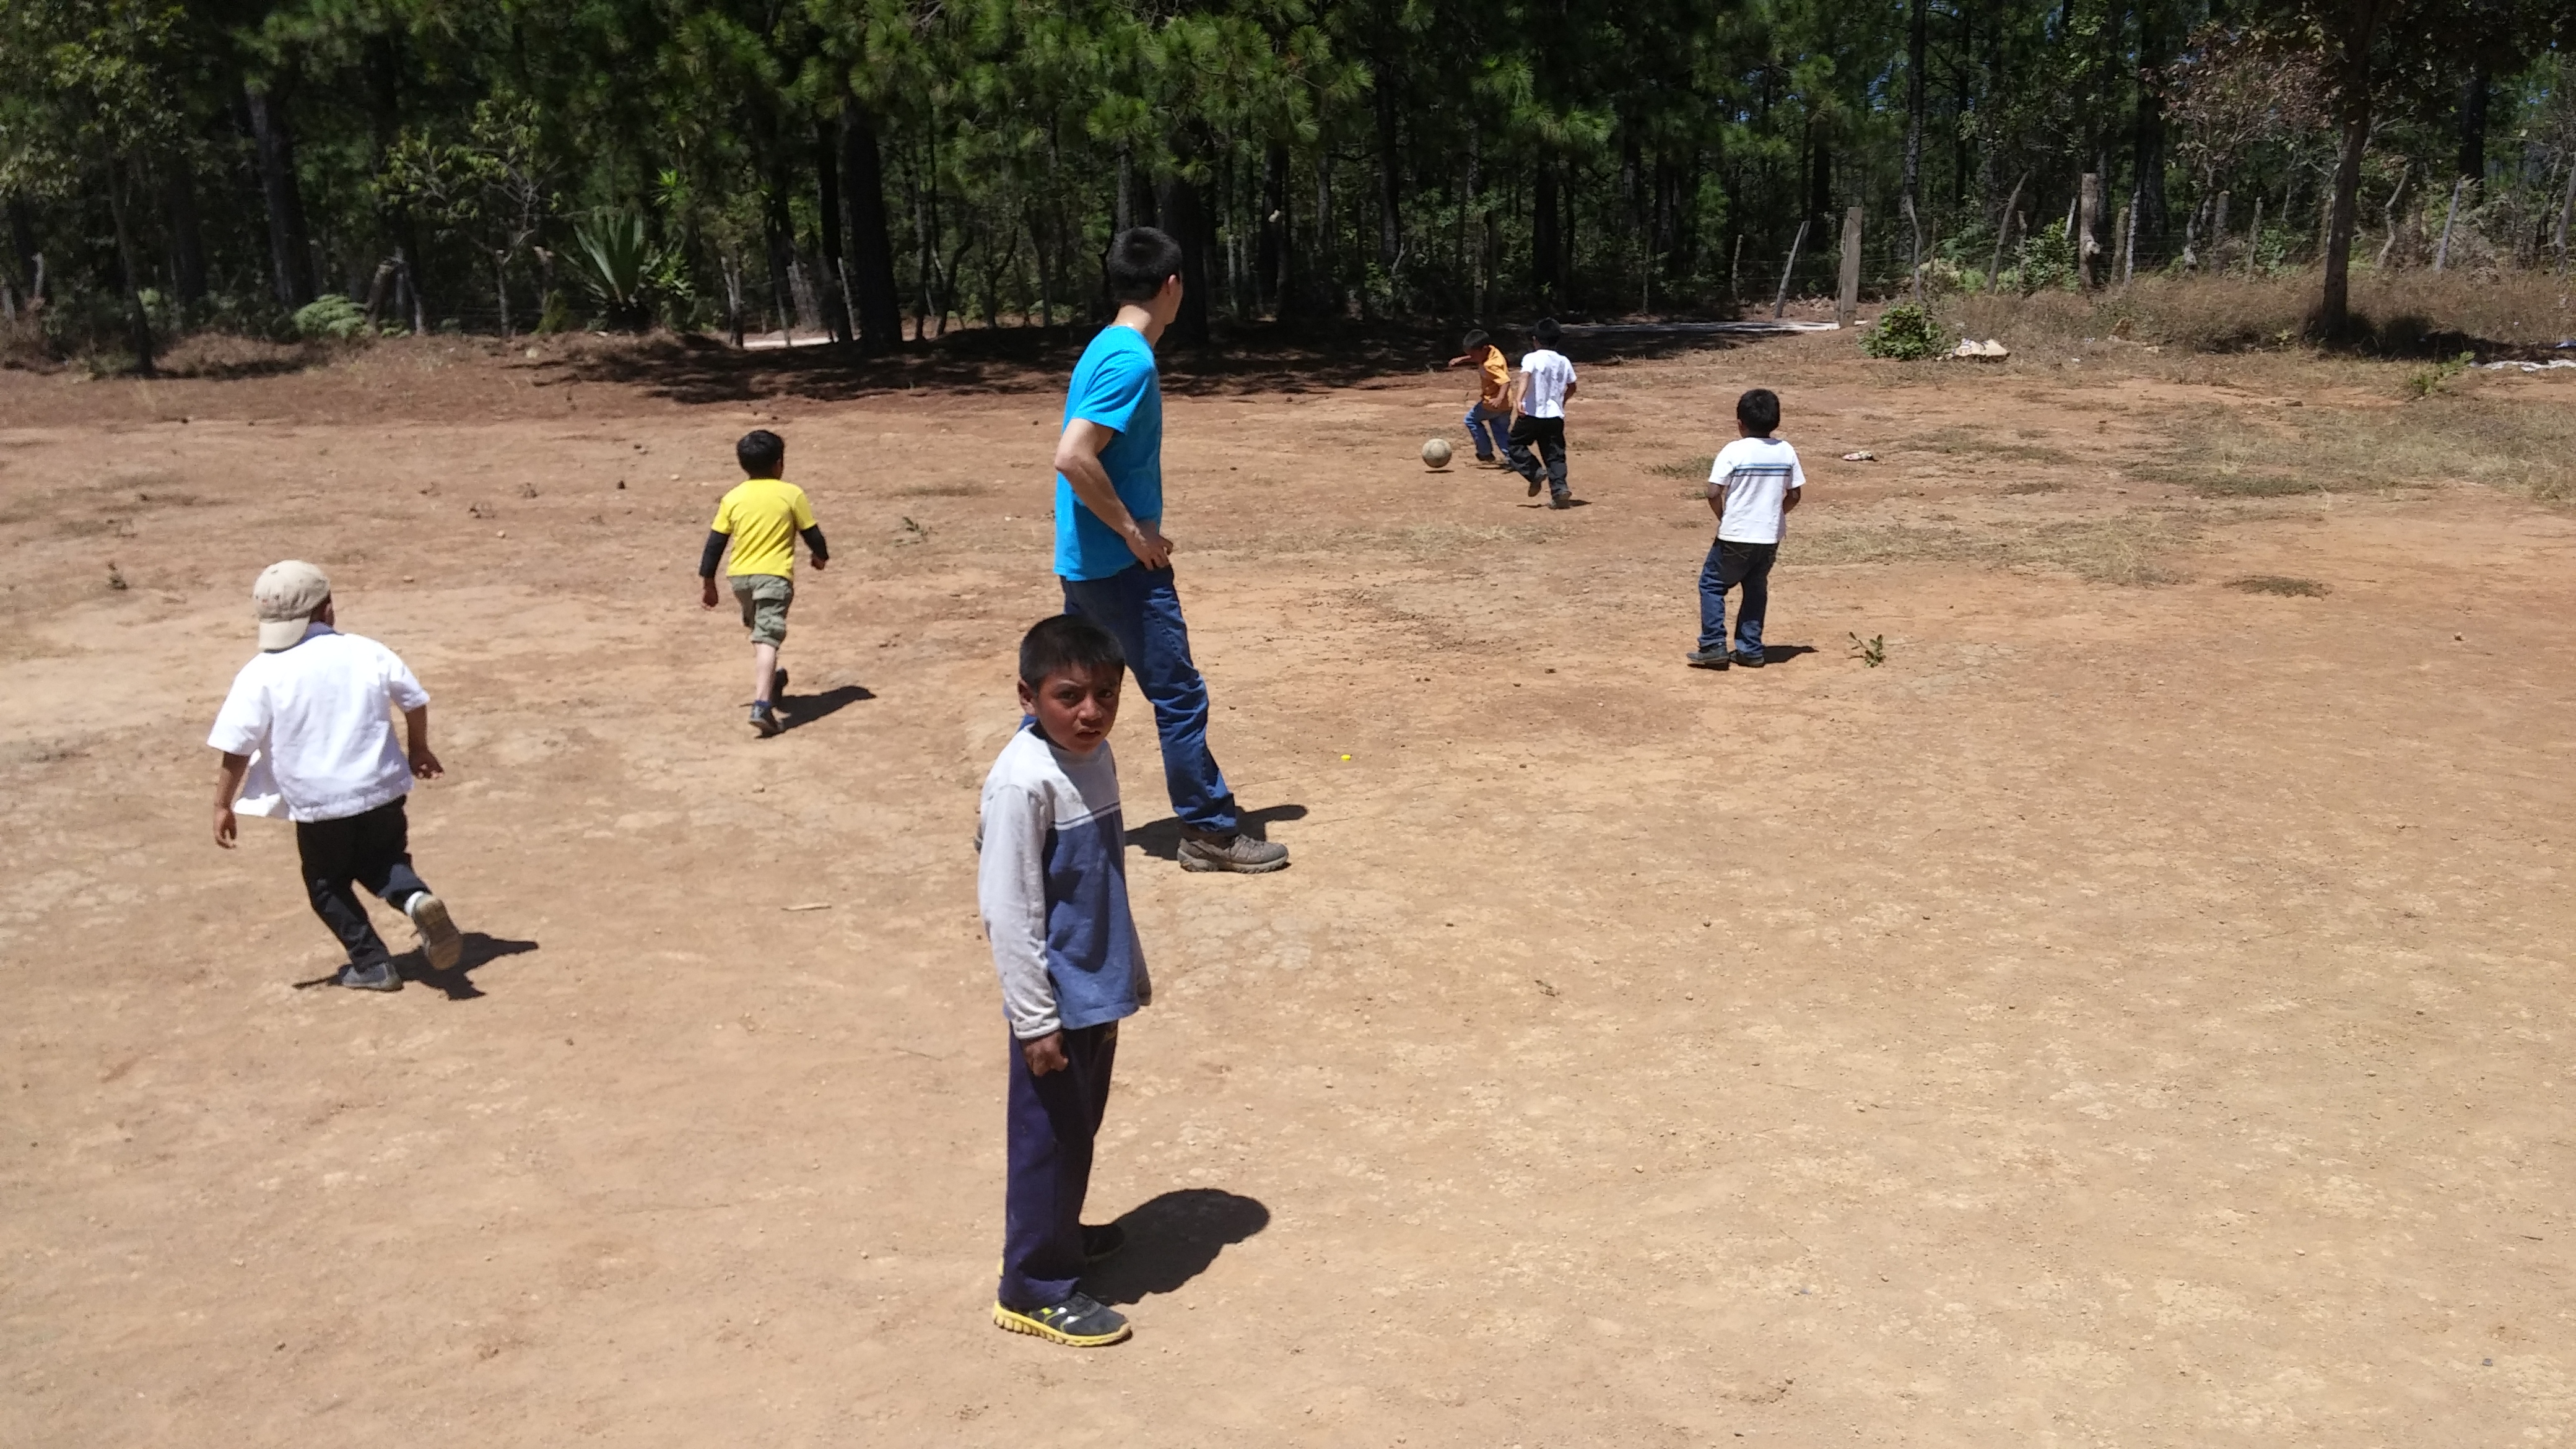 Playing soccer with the children